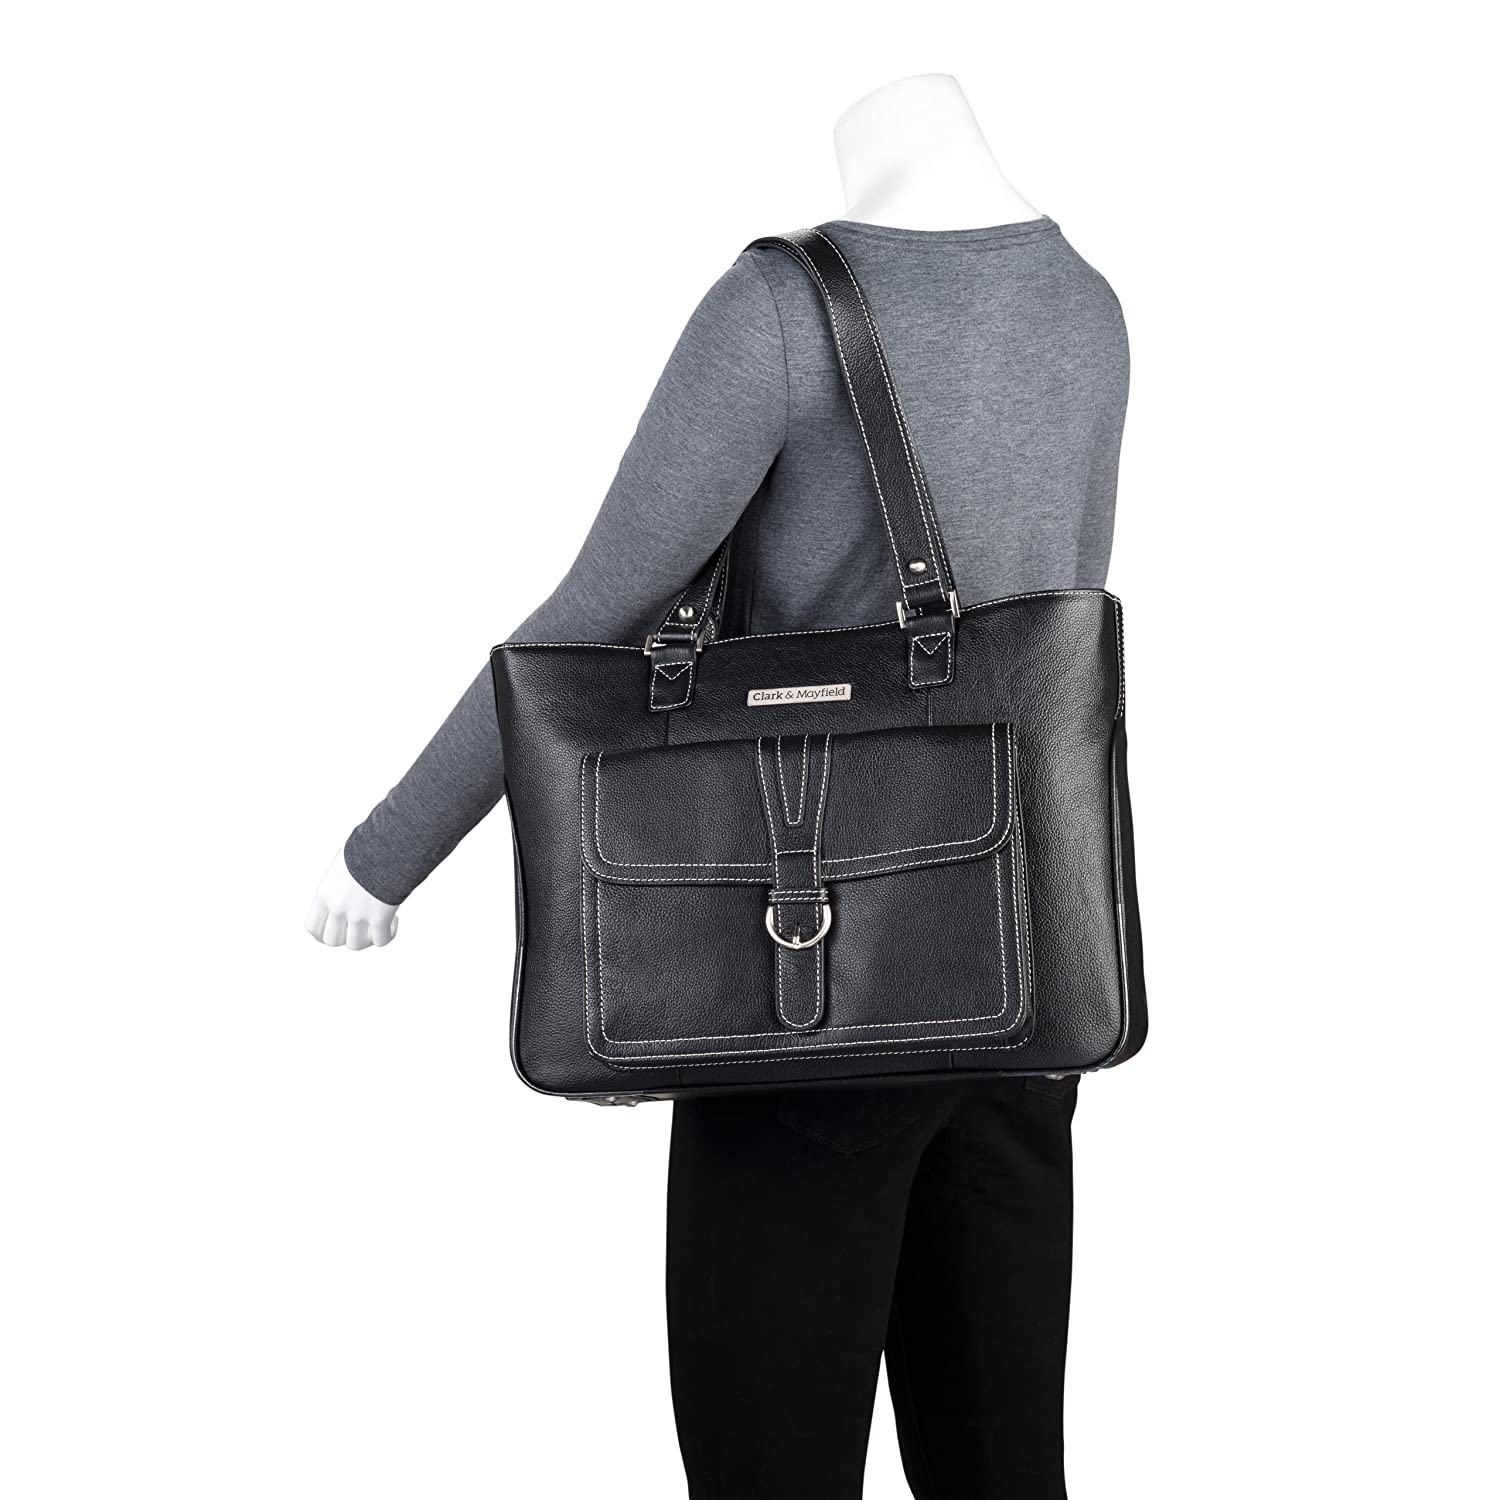 """Amazon.com: Clark & Mayfield Women's Stafford Pro Leather Laptop Tote Bag  15.6"""" - Black: Clothing"""